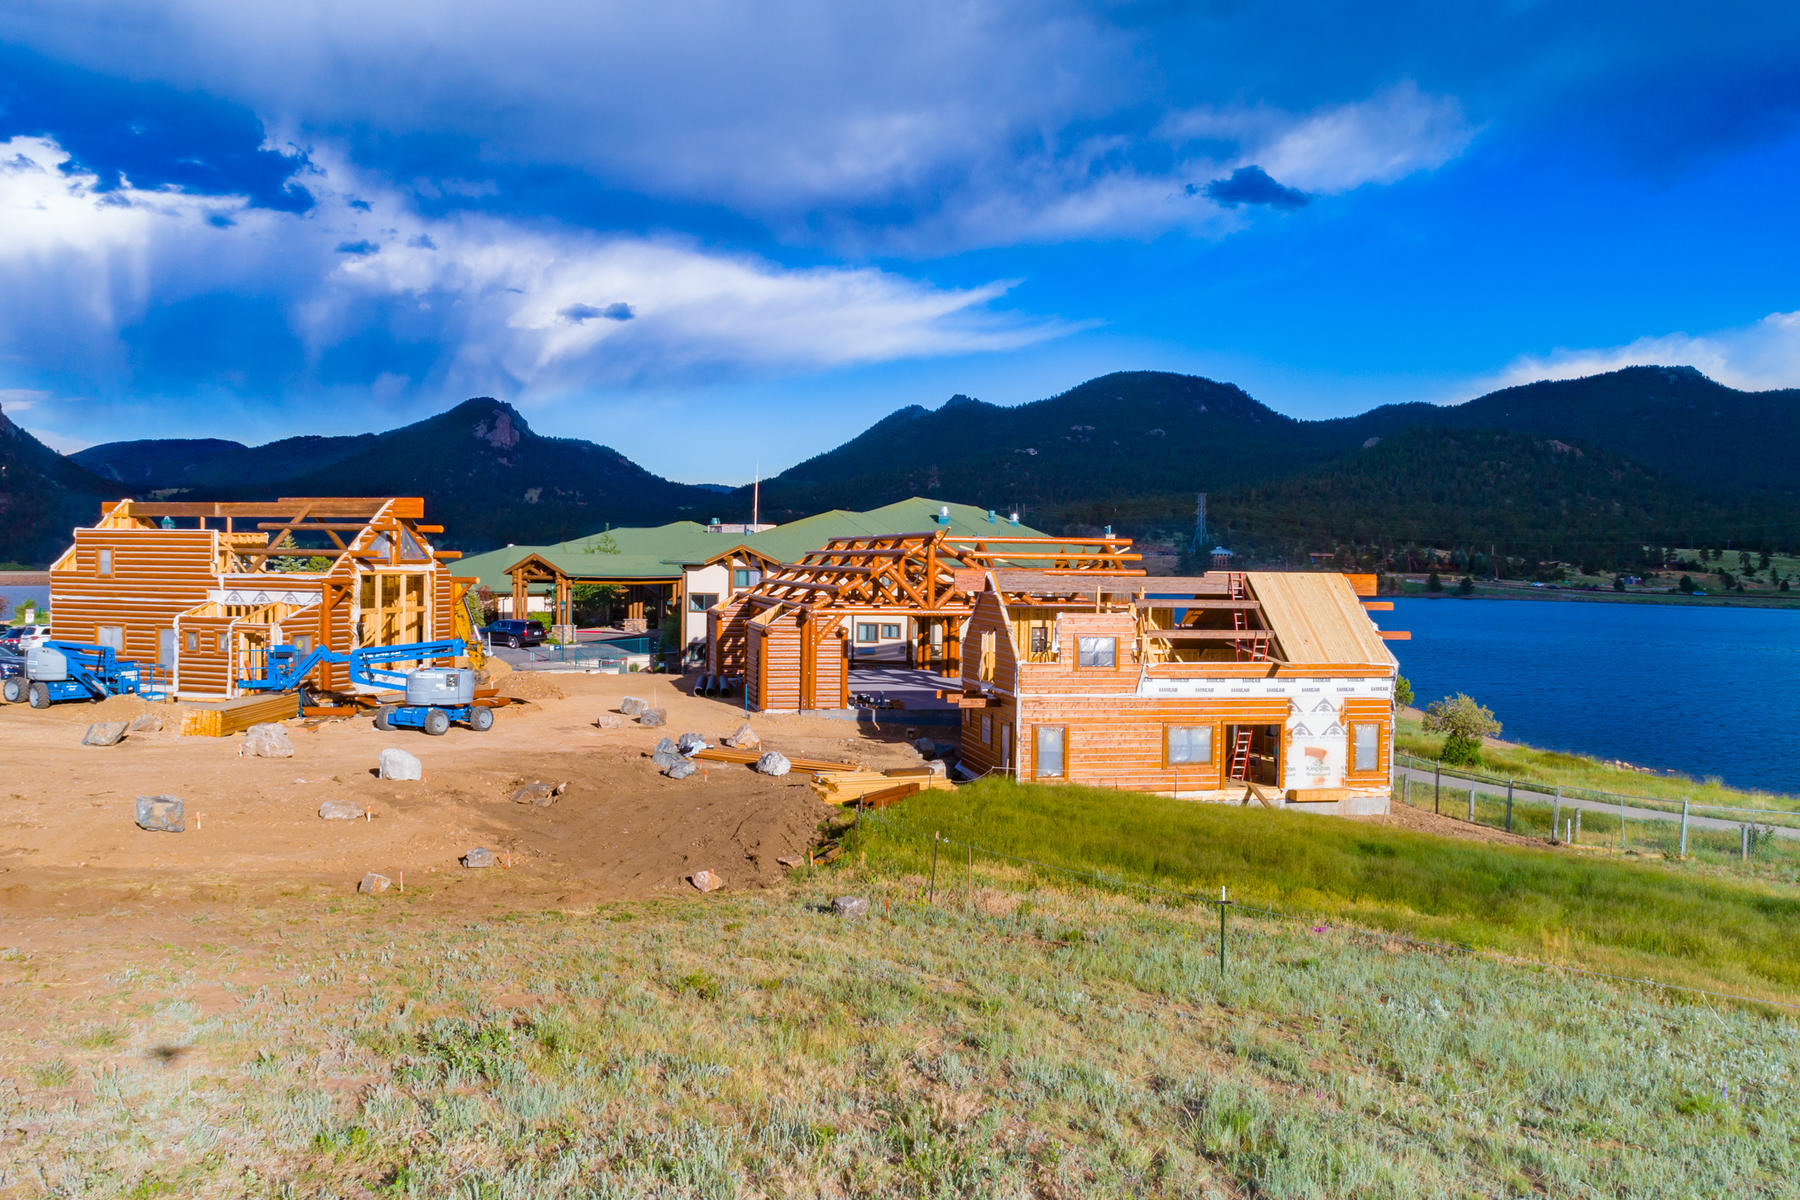 Additional photo for property listing at Exclusive Residential Resort Opportunity 1644 Mountain Village Ln Estes Park, Colorado 80517 United States